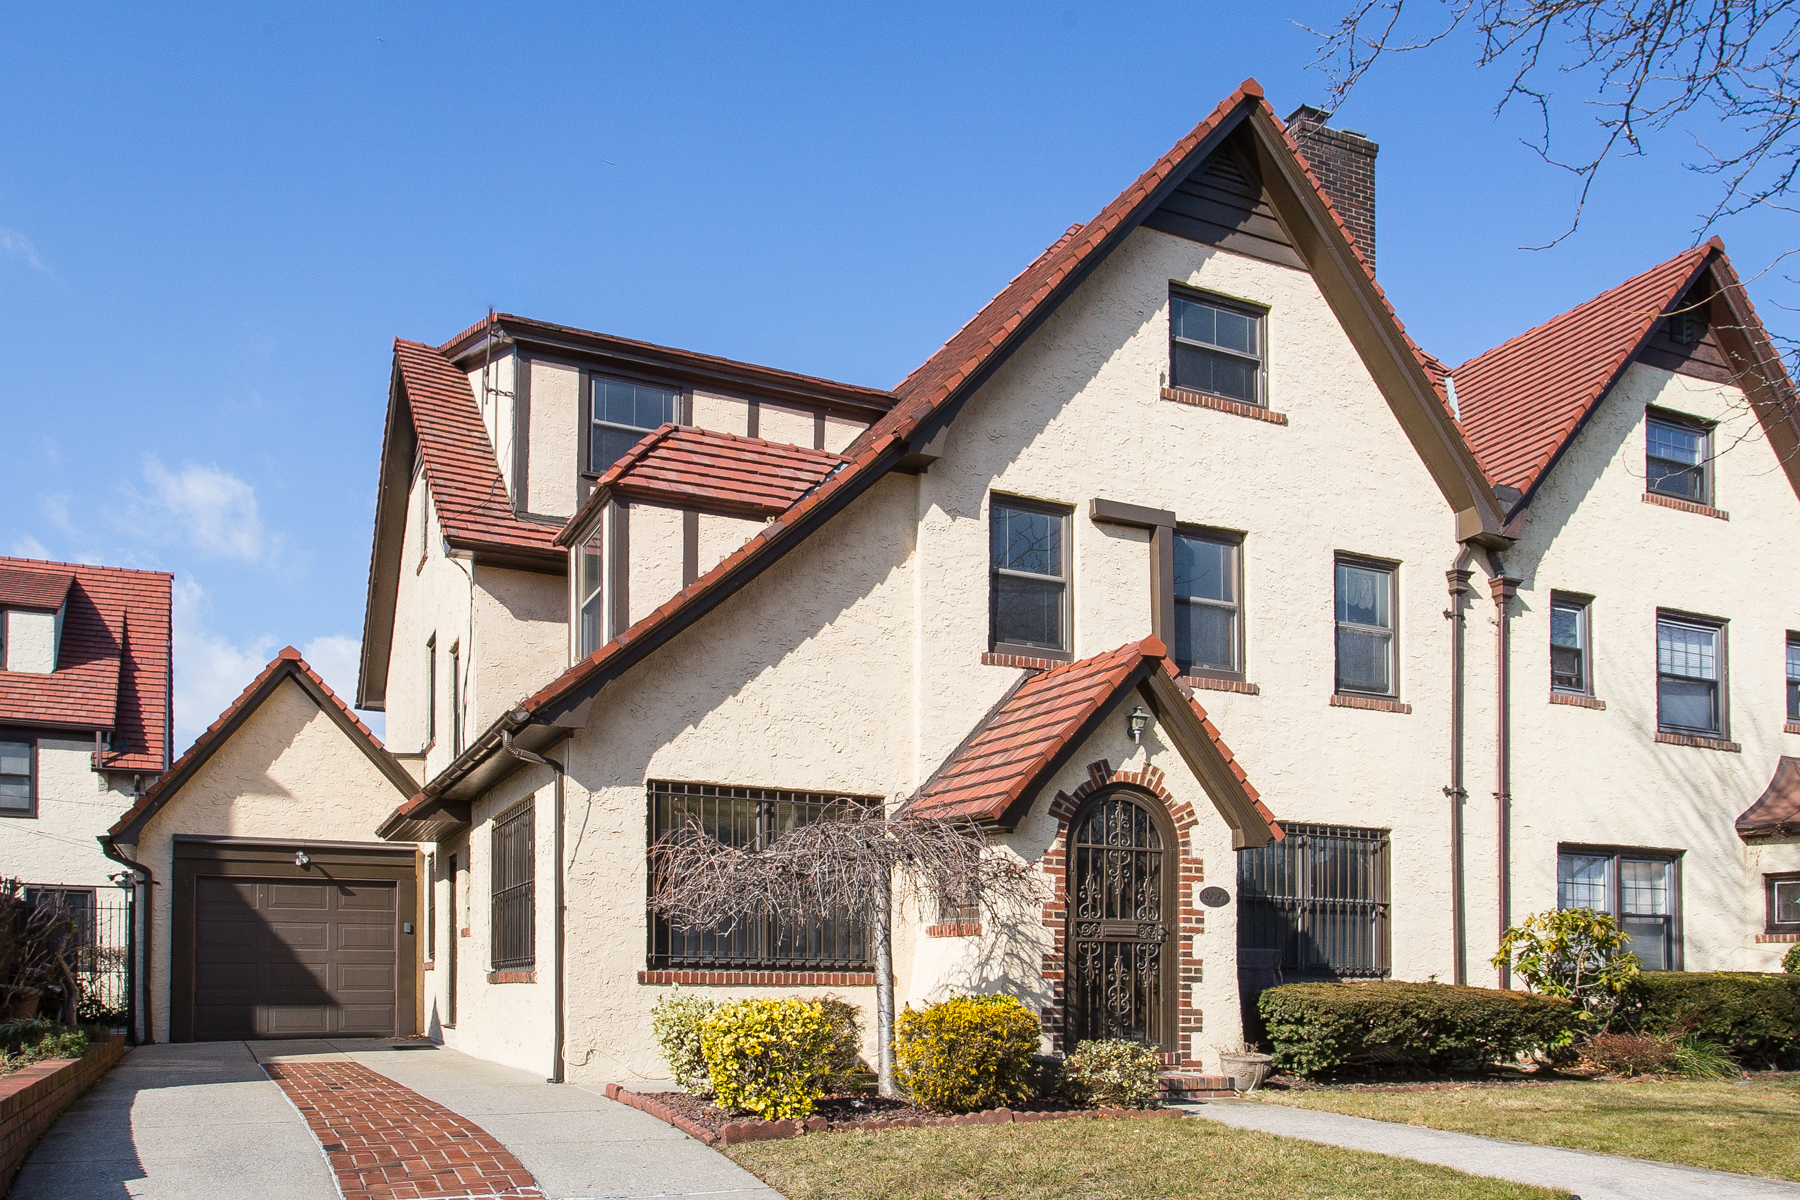 """Single Family Homes for Sale at """"TUDOR STYLED CHARMER"""" 100-07 Herrick Avenue, Forest Hills, New York 11375 United States"""